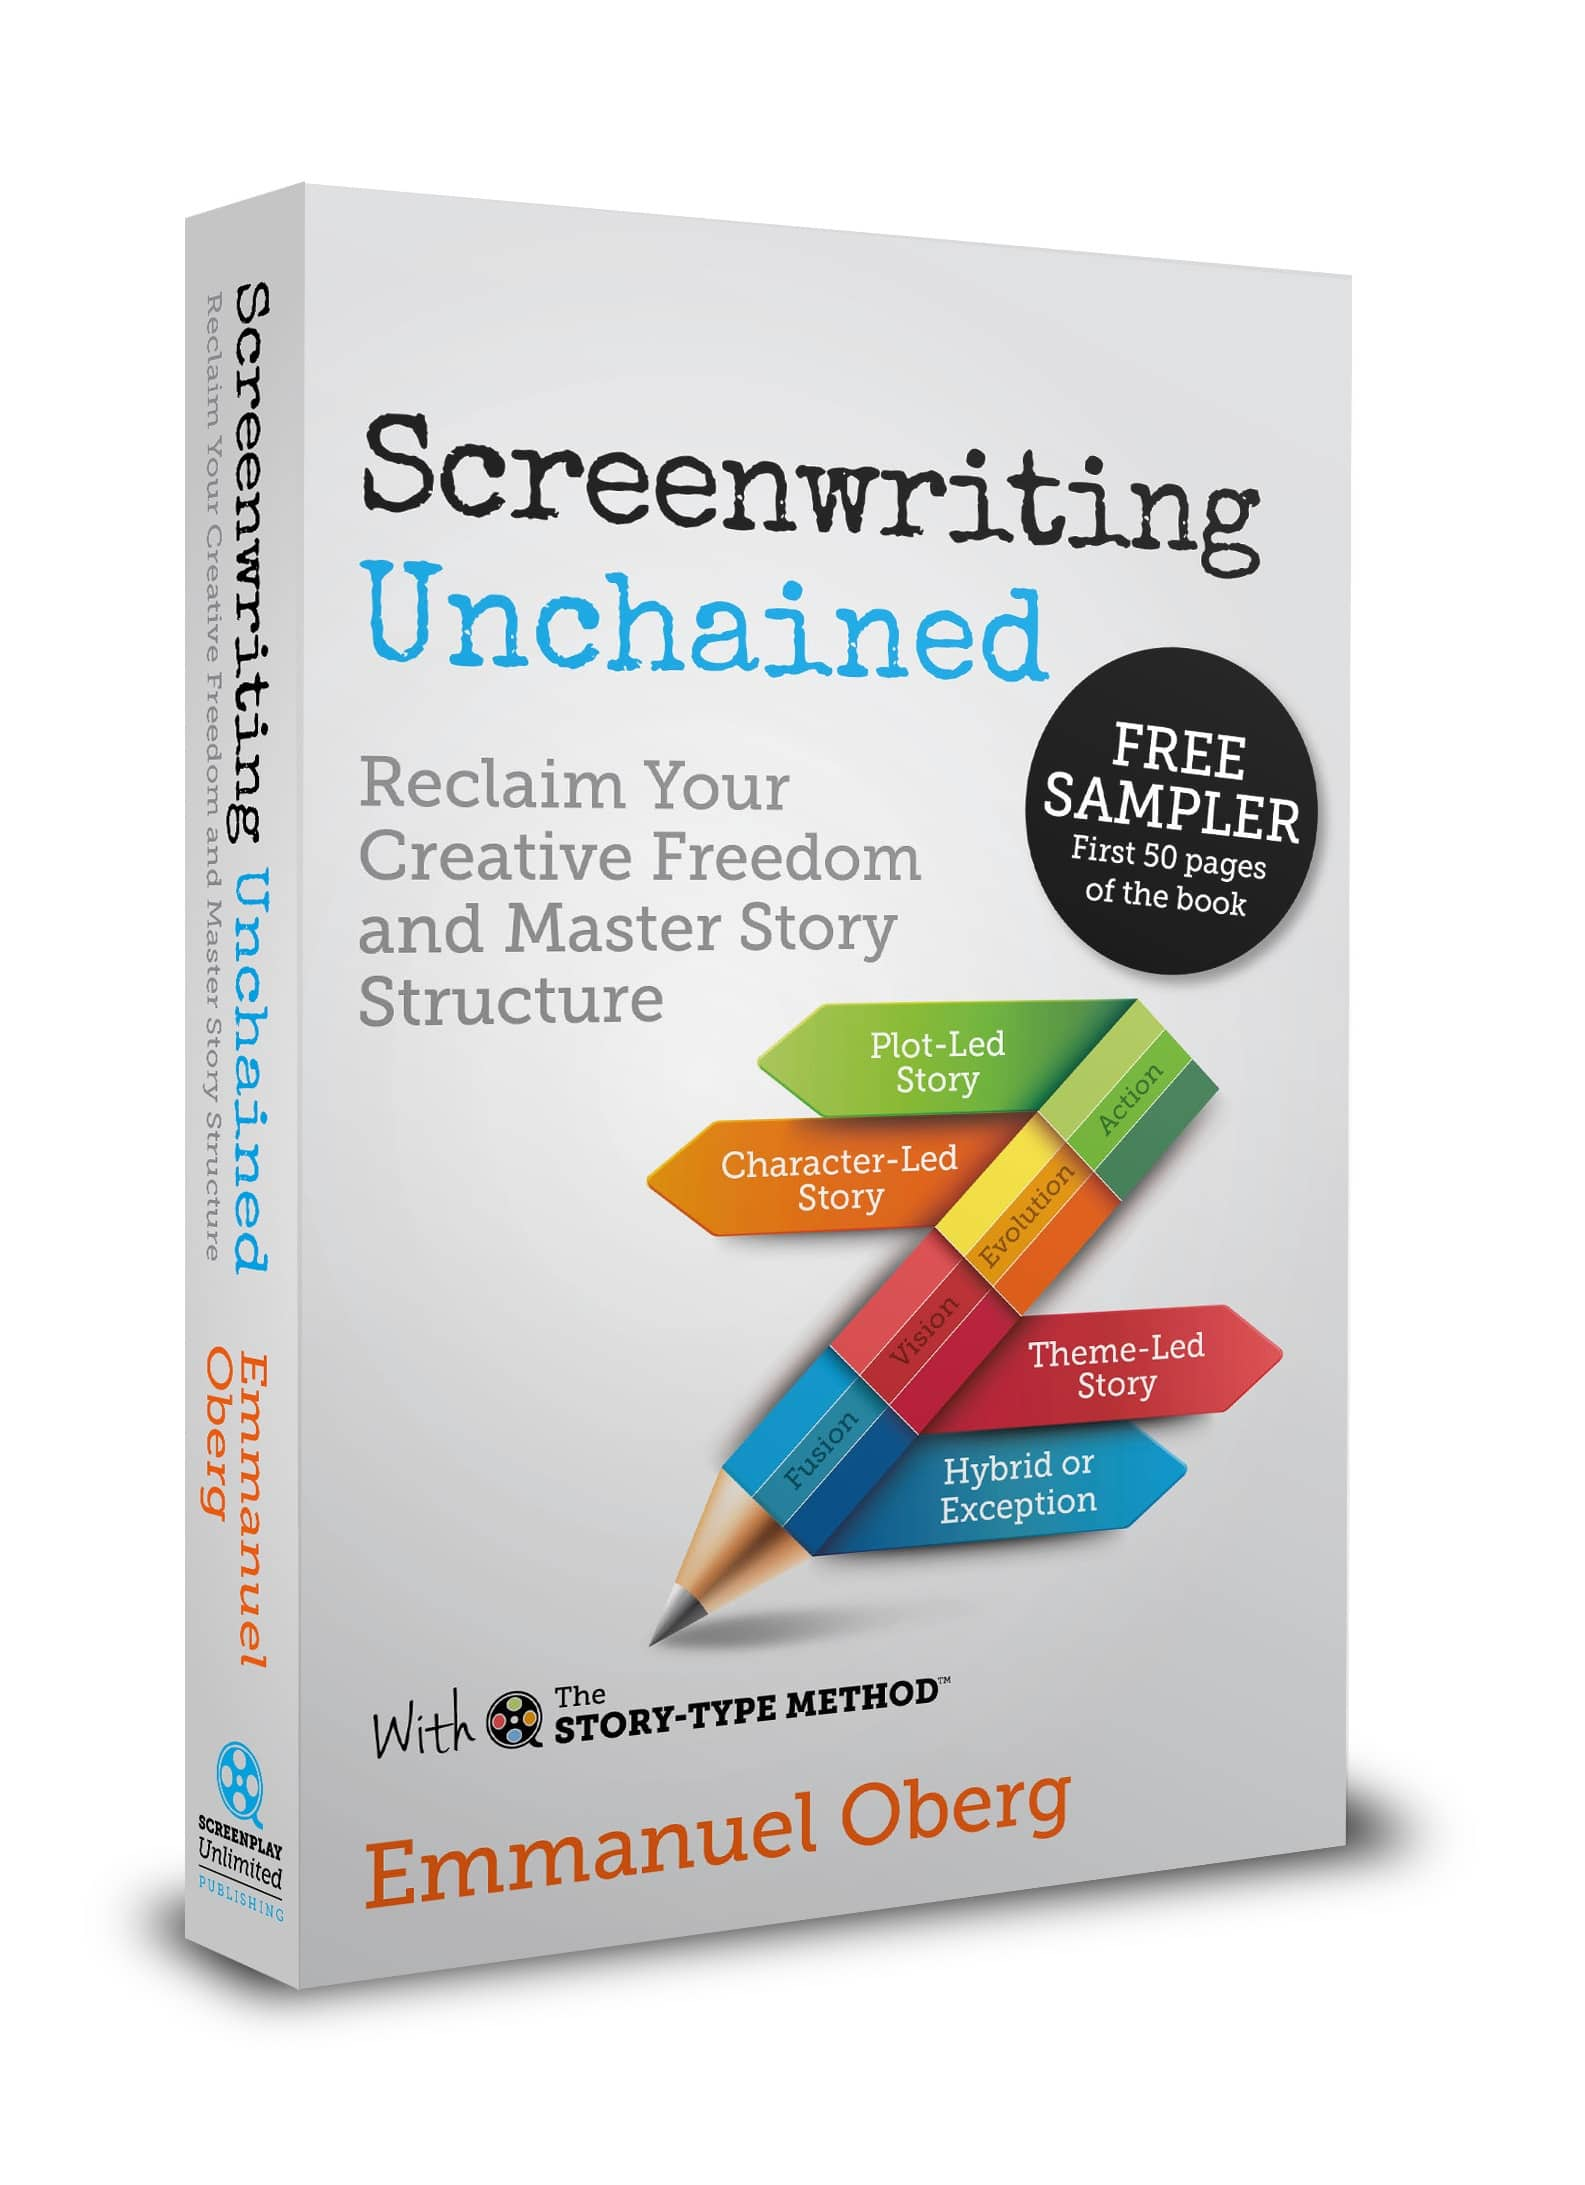 screenwriting unchained